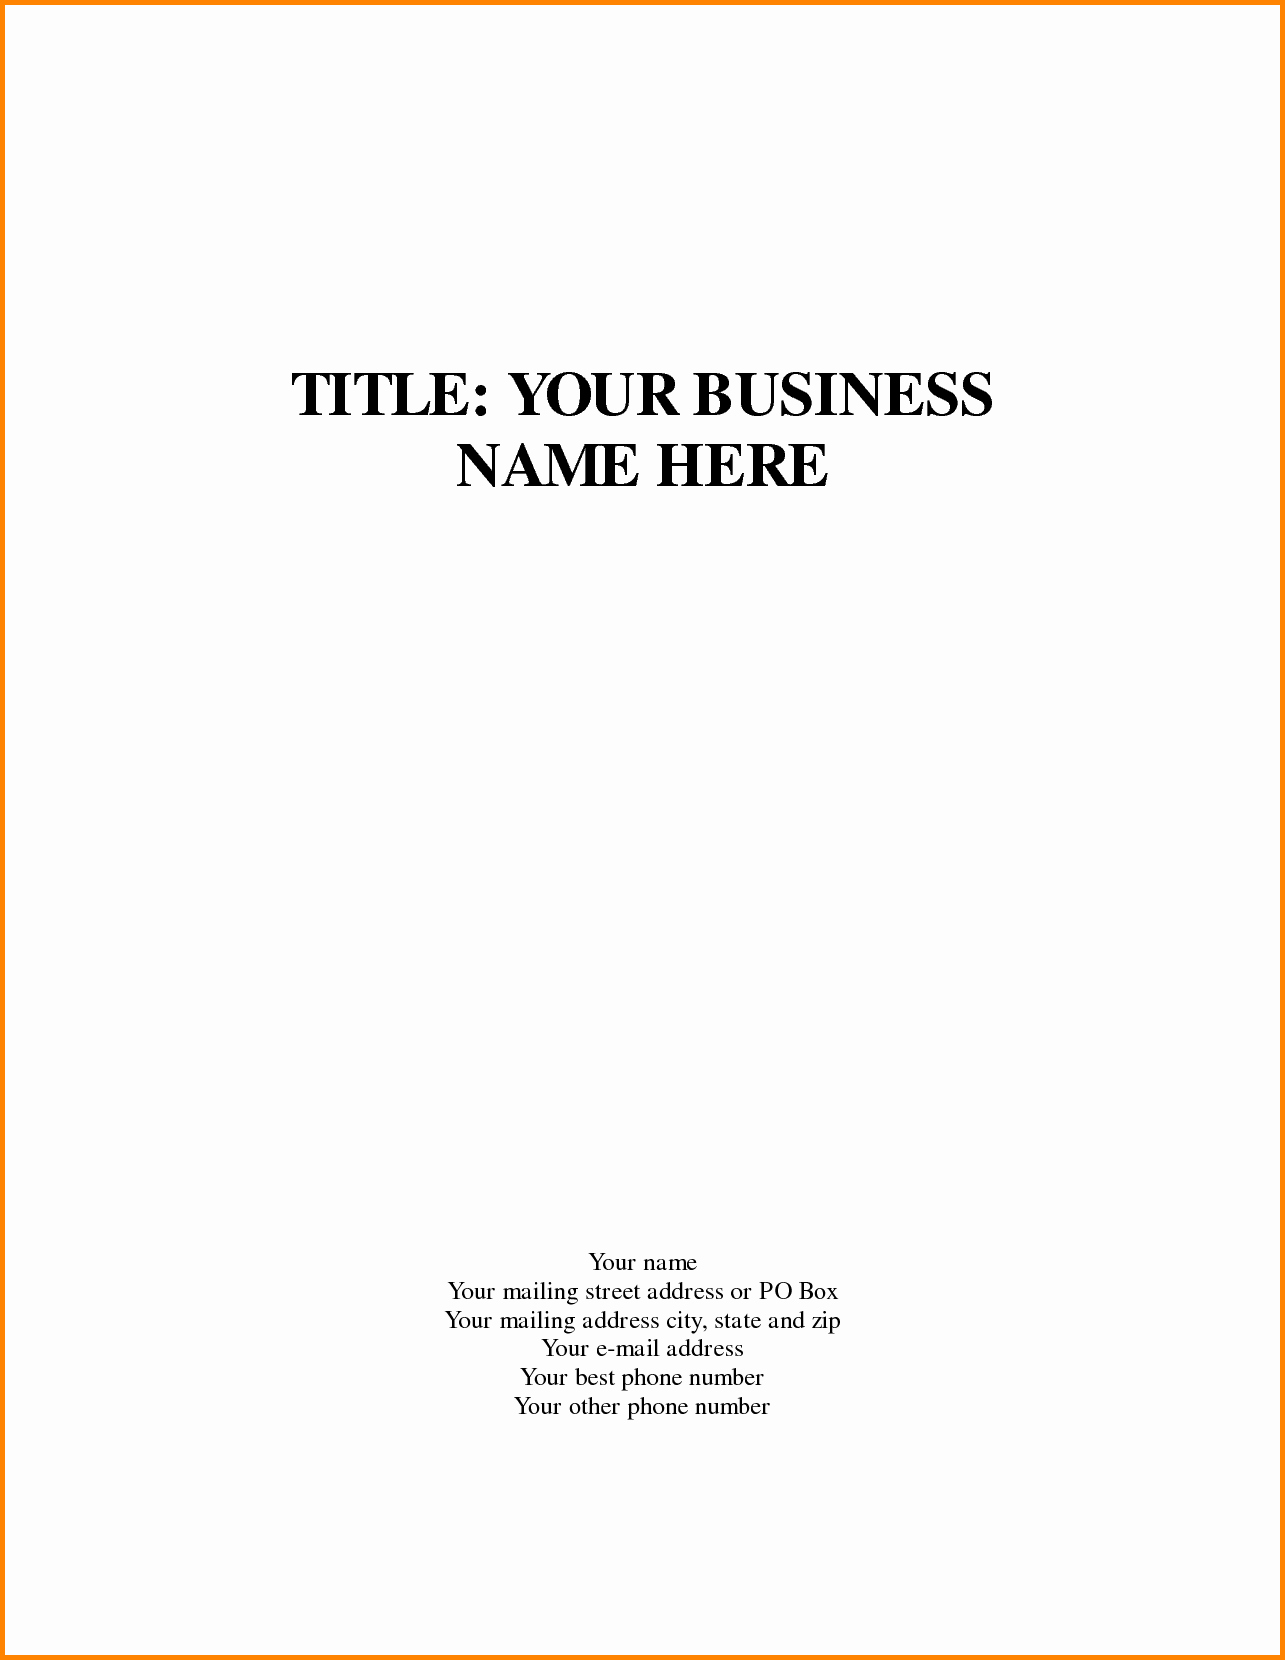 Research Paper Title Page Template New Business Title Page Template Quote Templates Apa Essay